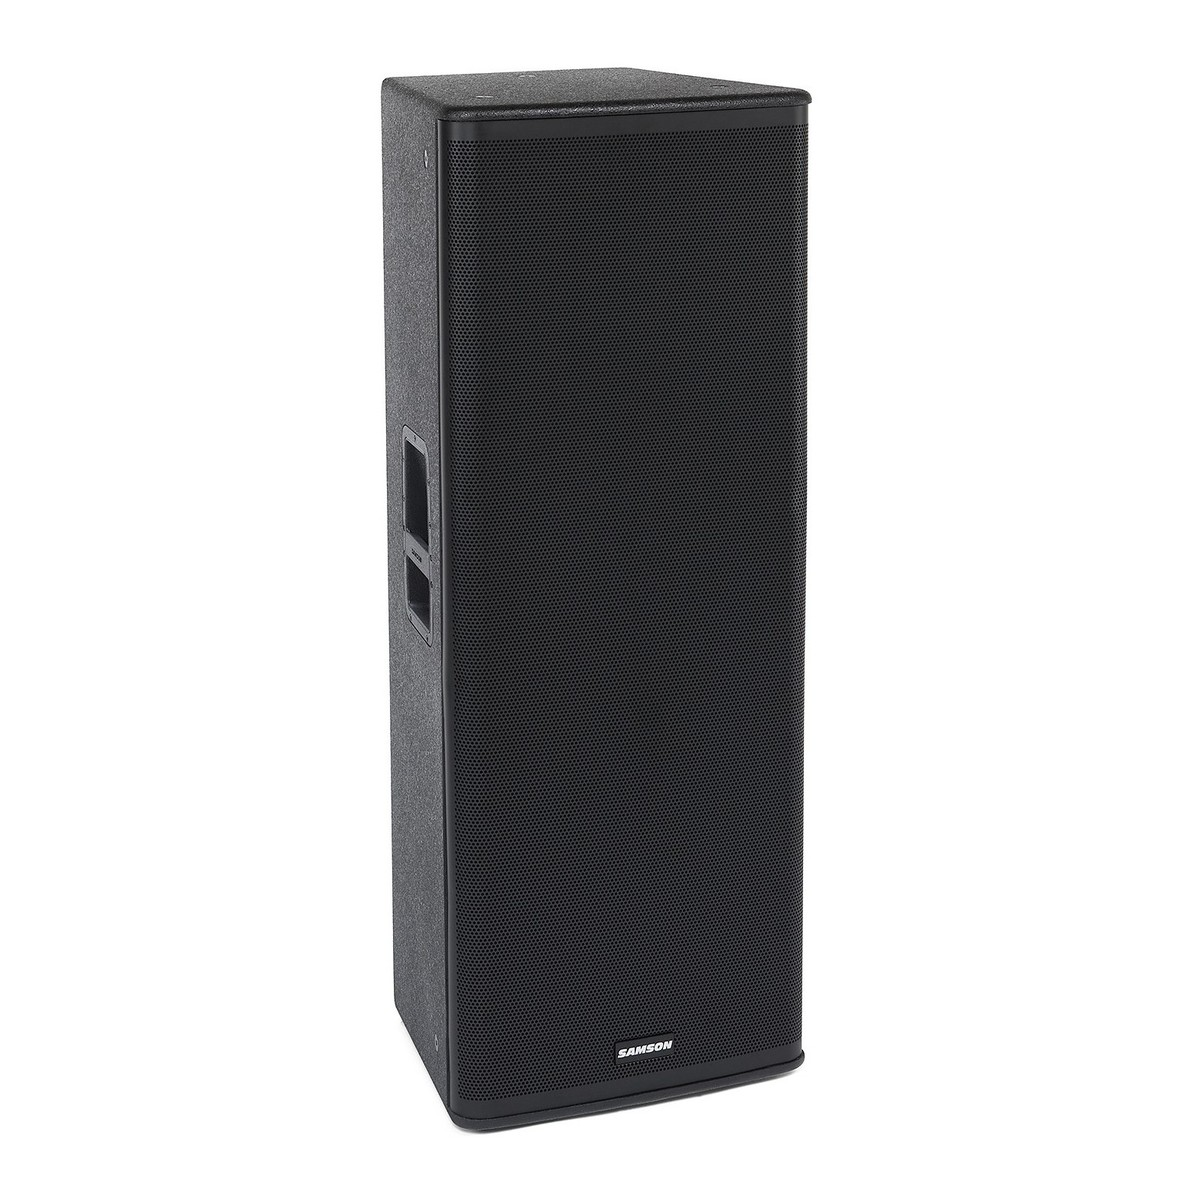 Click to view product details and reviews for Samson Rsx215 Dual 15 Passive Pa Speaker.